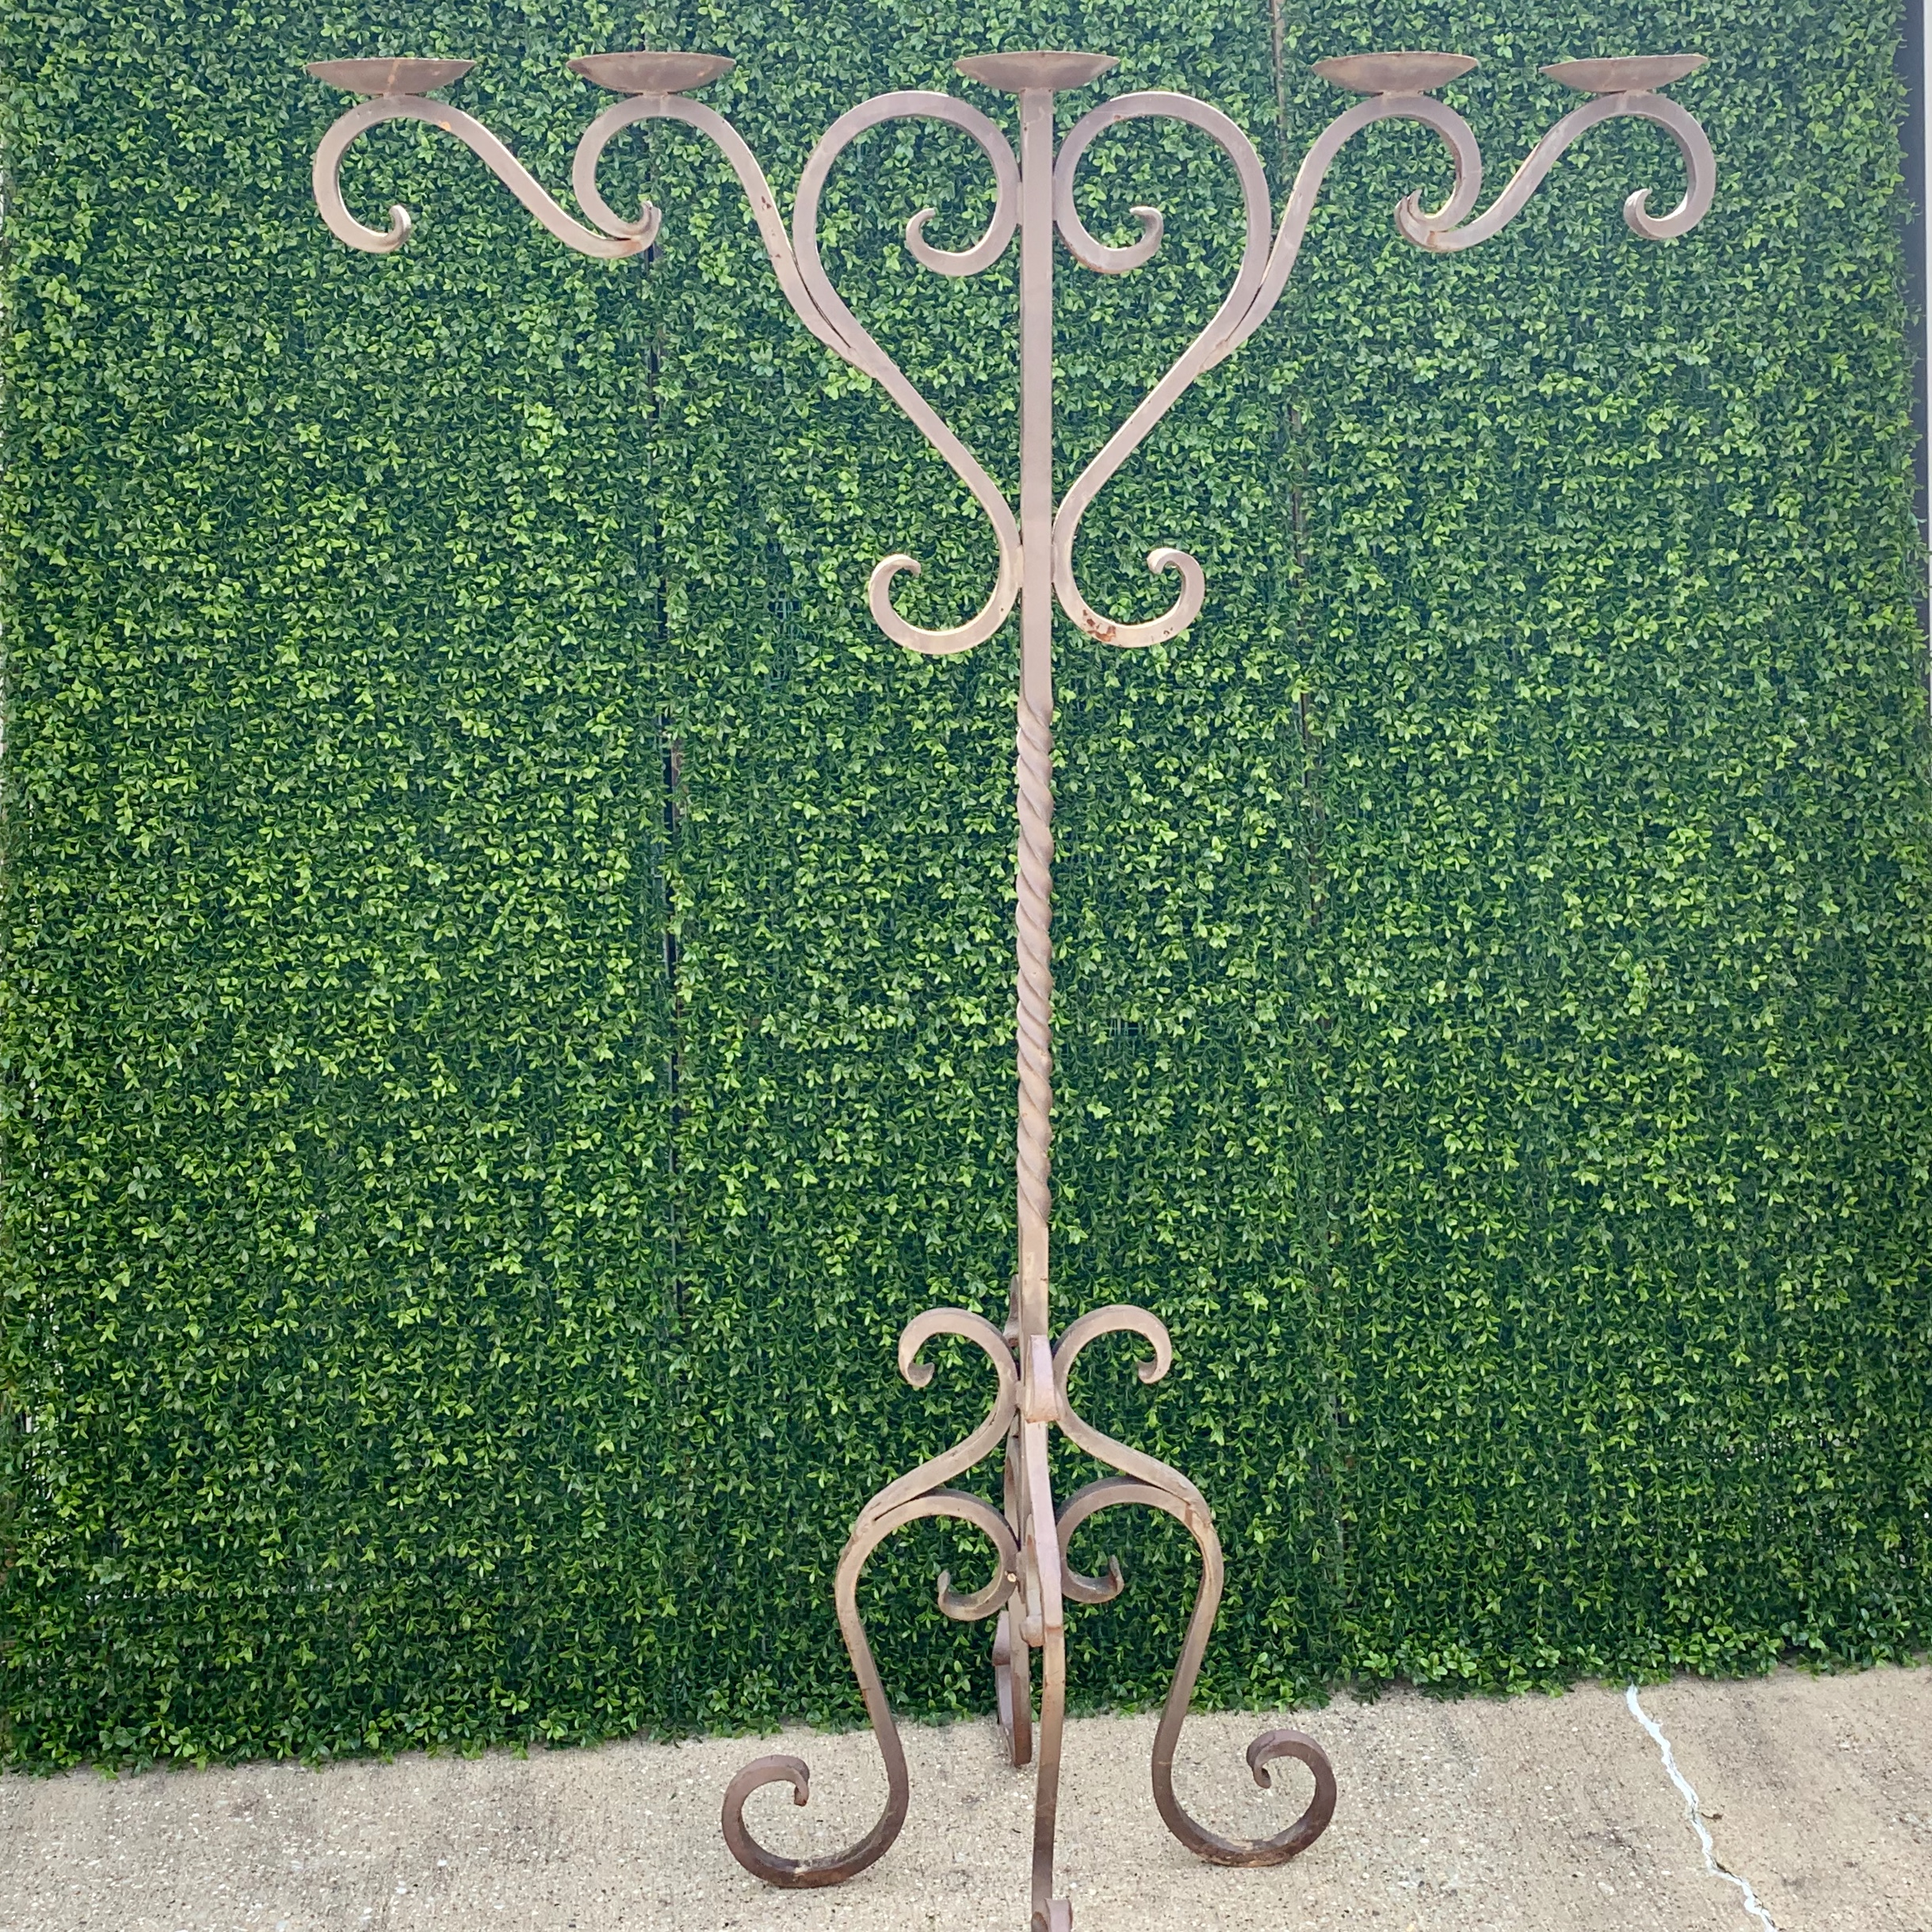 Iron Candelabra - $40.00 - 2 in stock